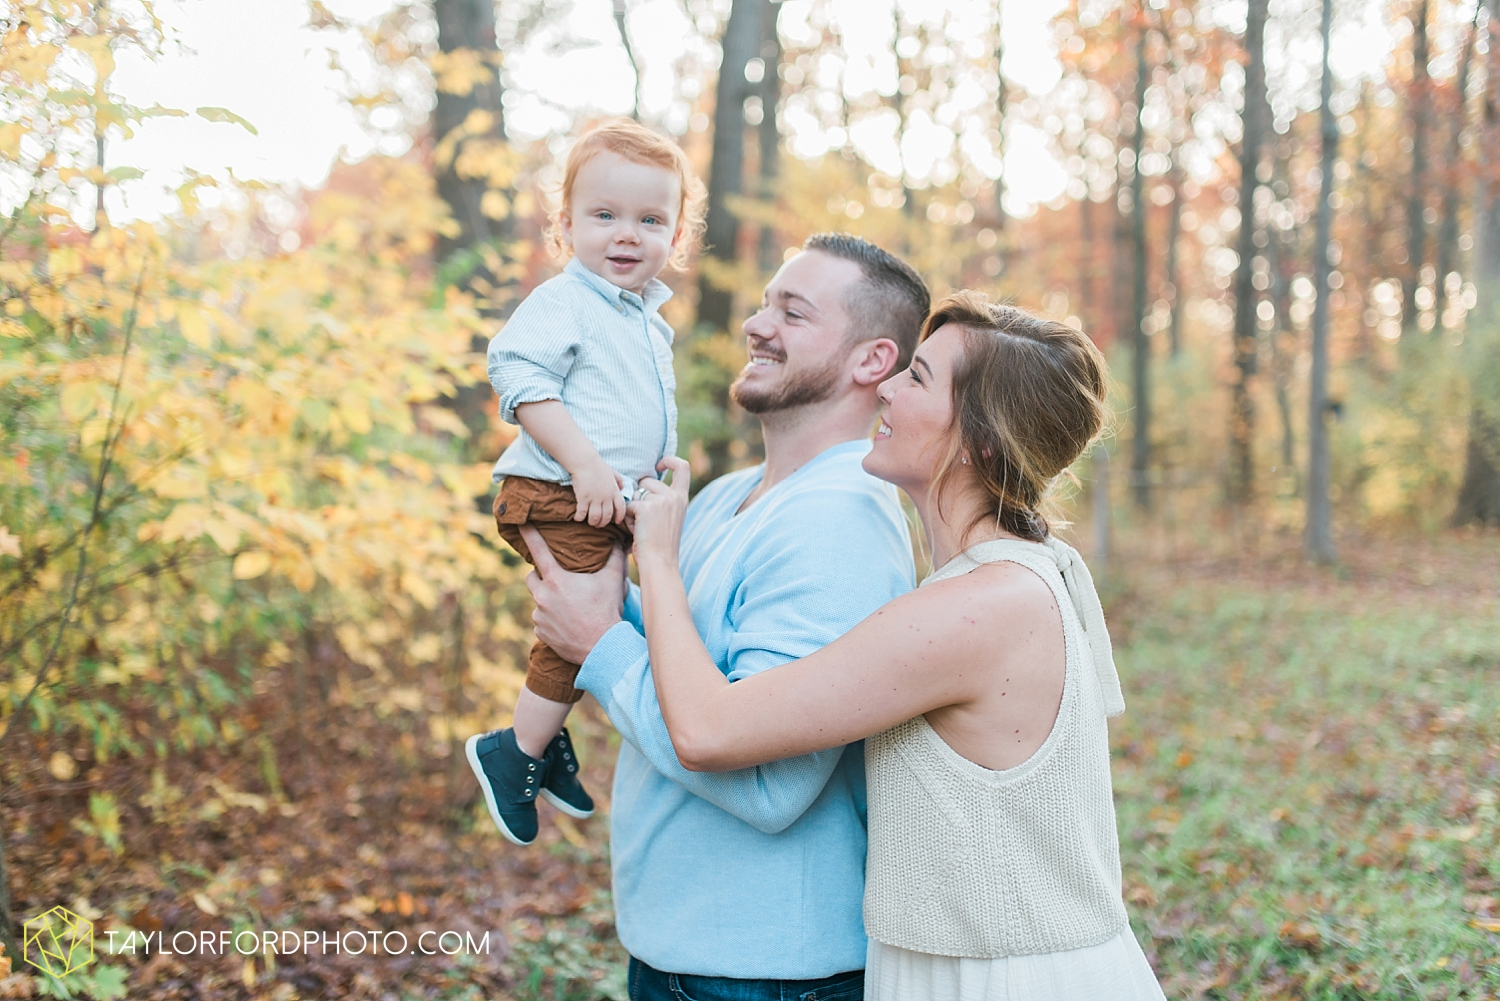 huntertown_indiana_family_photographer_taylor_ford_3610.jpg